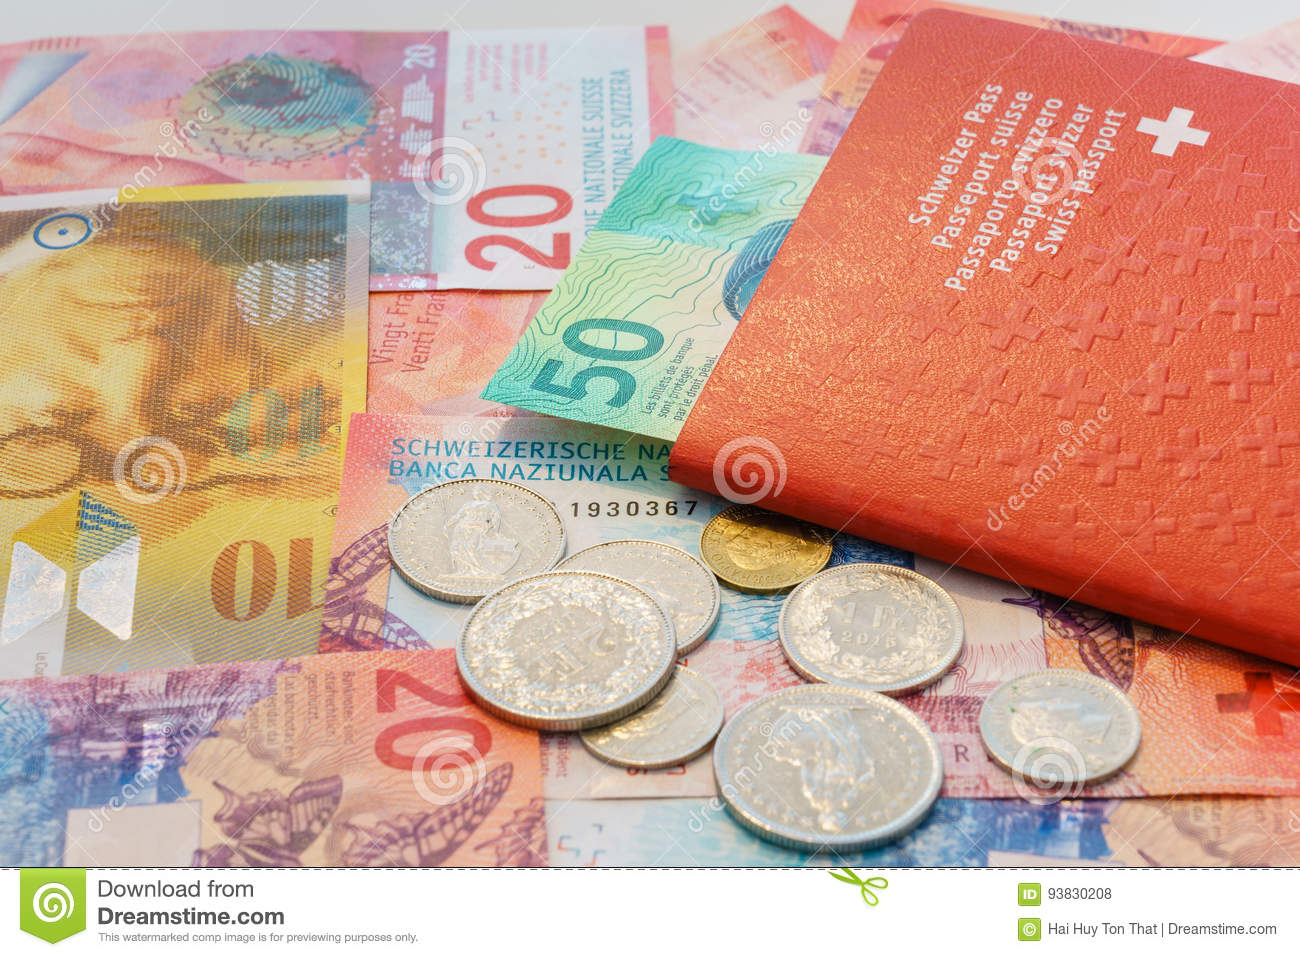 Swiss passport and Swiss Francs with New 20 and 50 Swiss Franc bills.